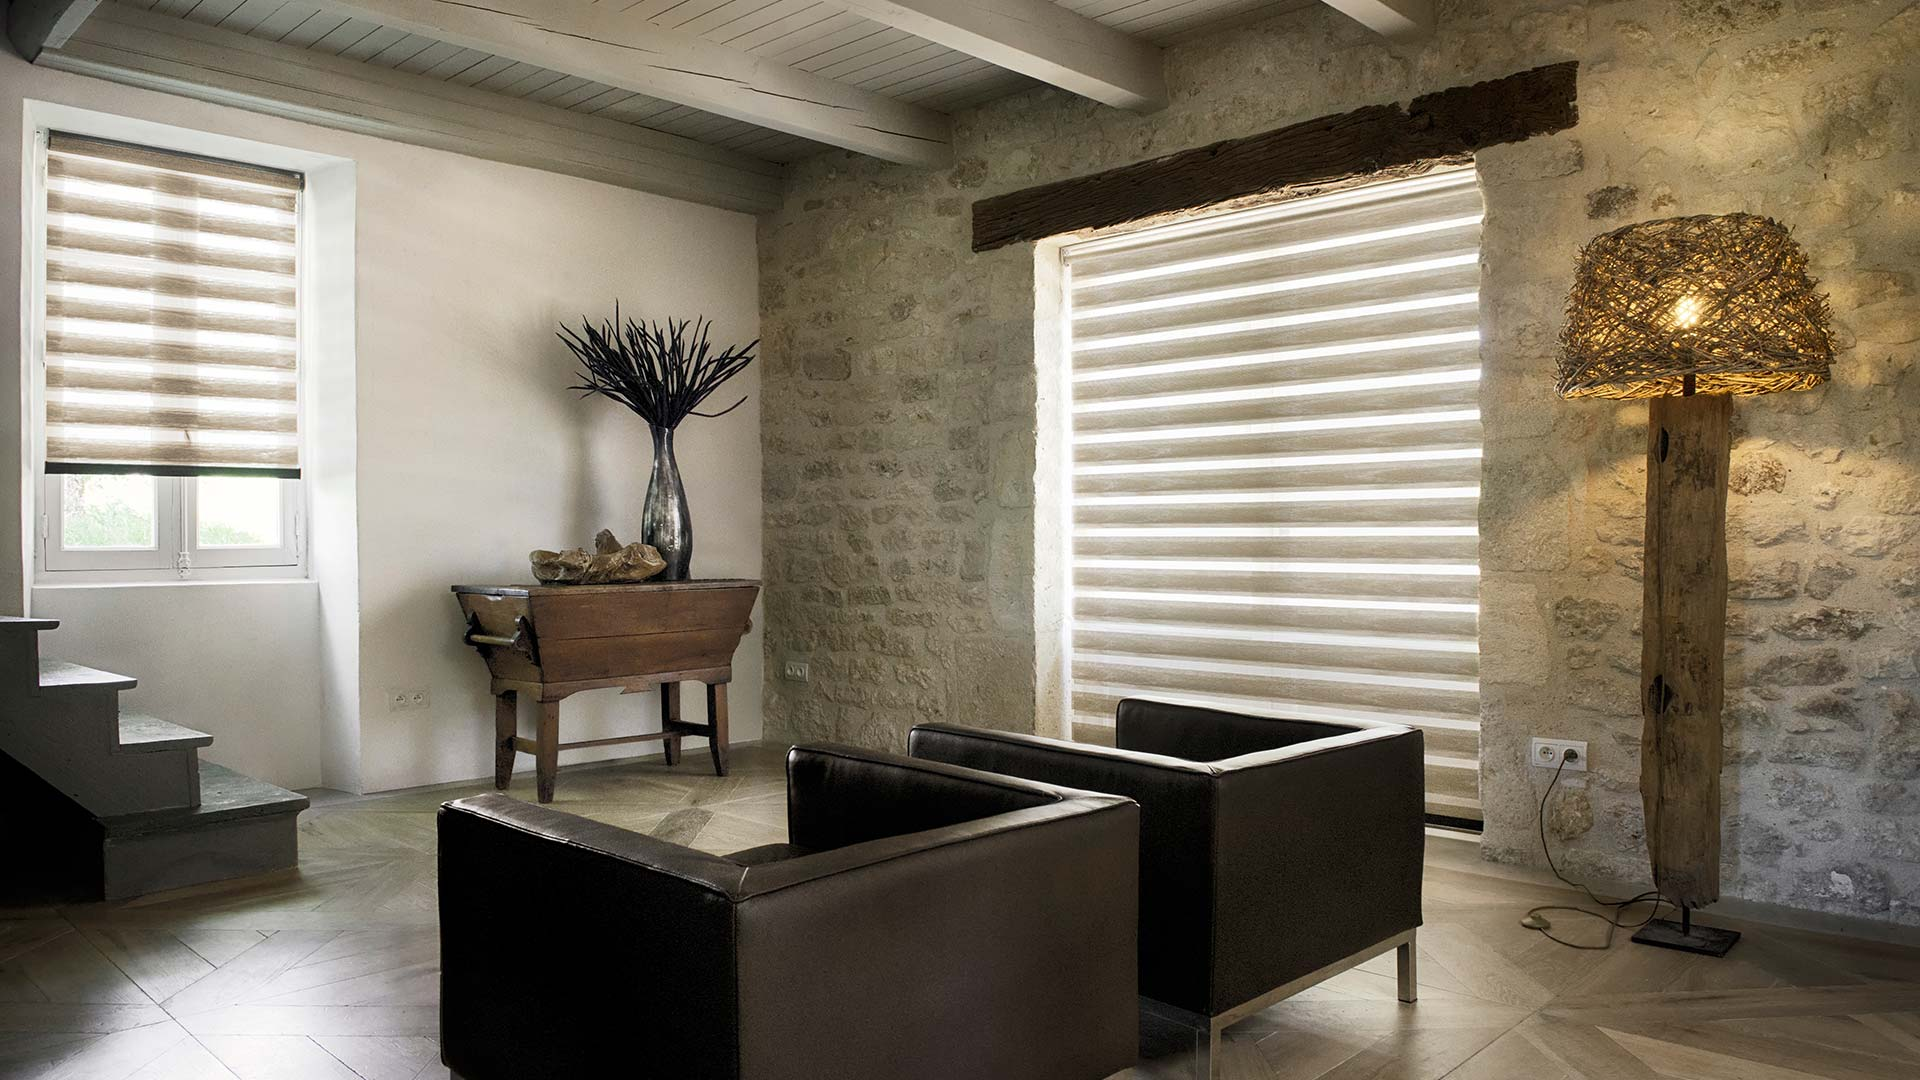 select and ideal docril awning awnings fabric richards home blinds furnishing window honeycomb for how